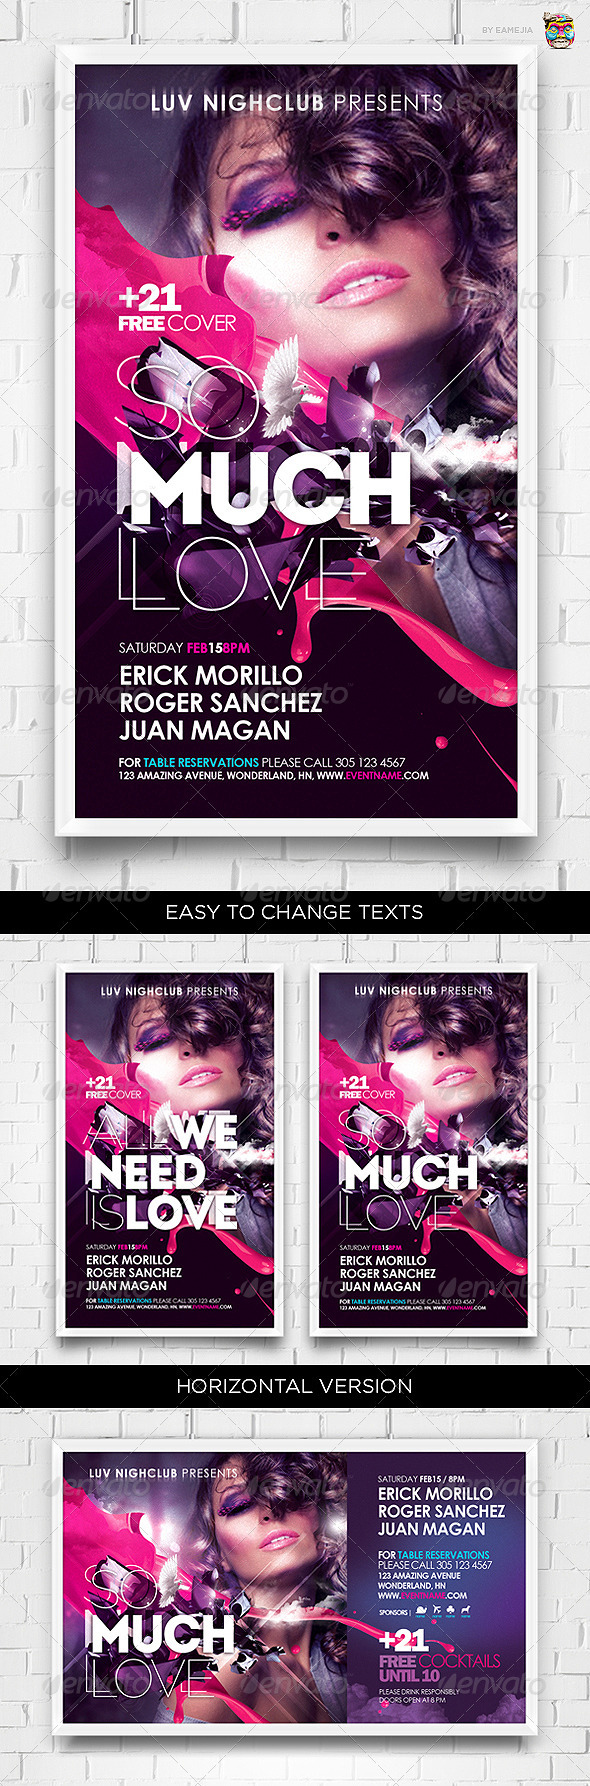 So Much Love Flyer Template - Clubs & Parties Events